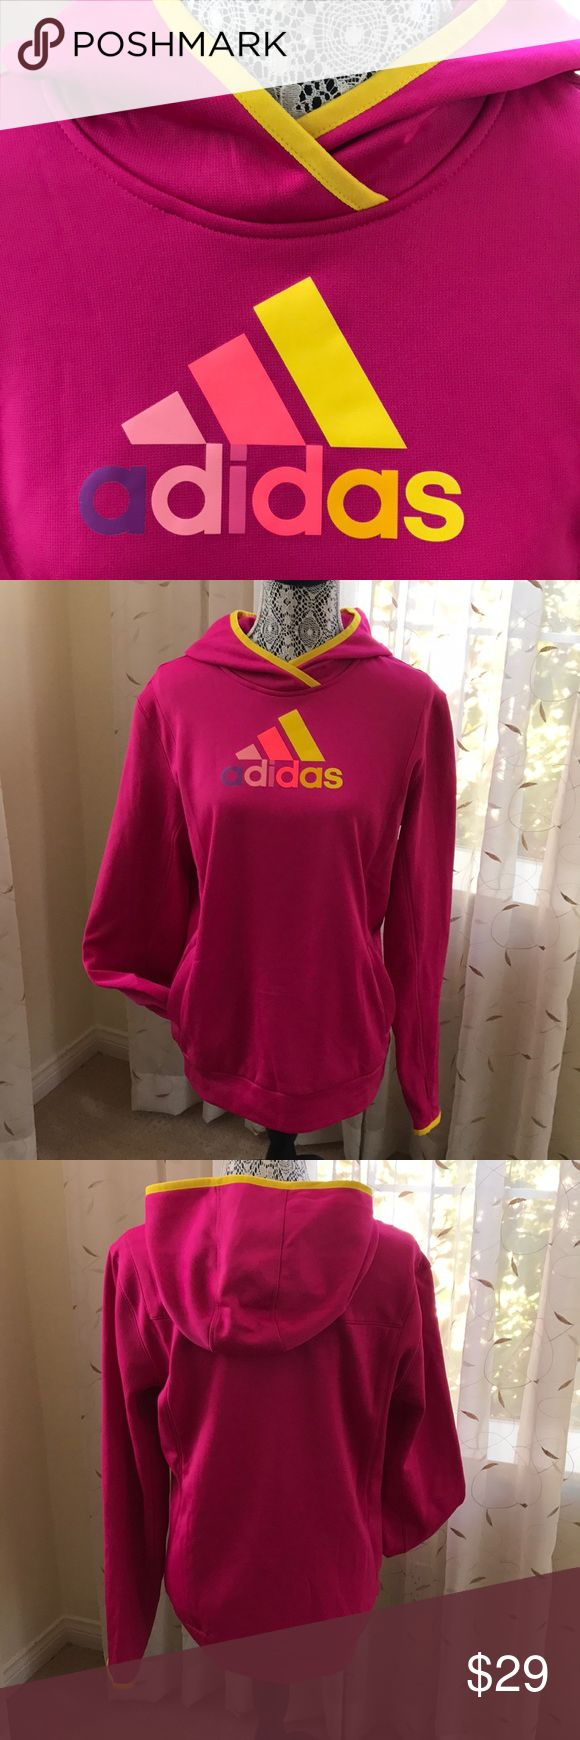 NWOT Adidas ClimaWarm Hoodie in Ladies Large Adidas ClimaWarm Hoodie in ladies size large, brand new without tags, never worn.  Energize your work out & brighten up your day with this colorful & cozy hoodie! With this bright color, you're sure to infuse some fun while getting fit or simply lounging. Thanks for shopping my closet!💕 adidas Tops Sweatshirts & Hoodies